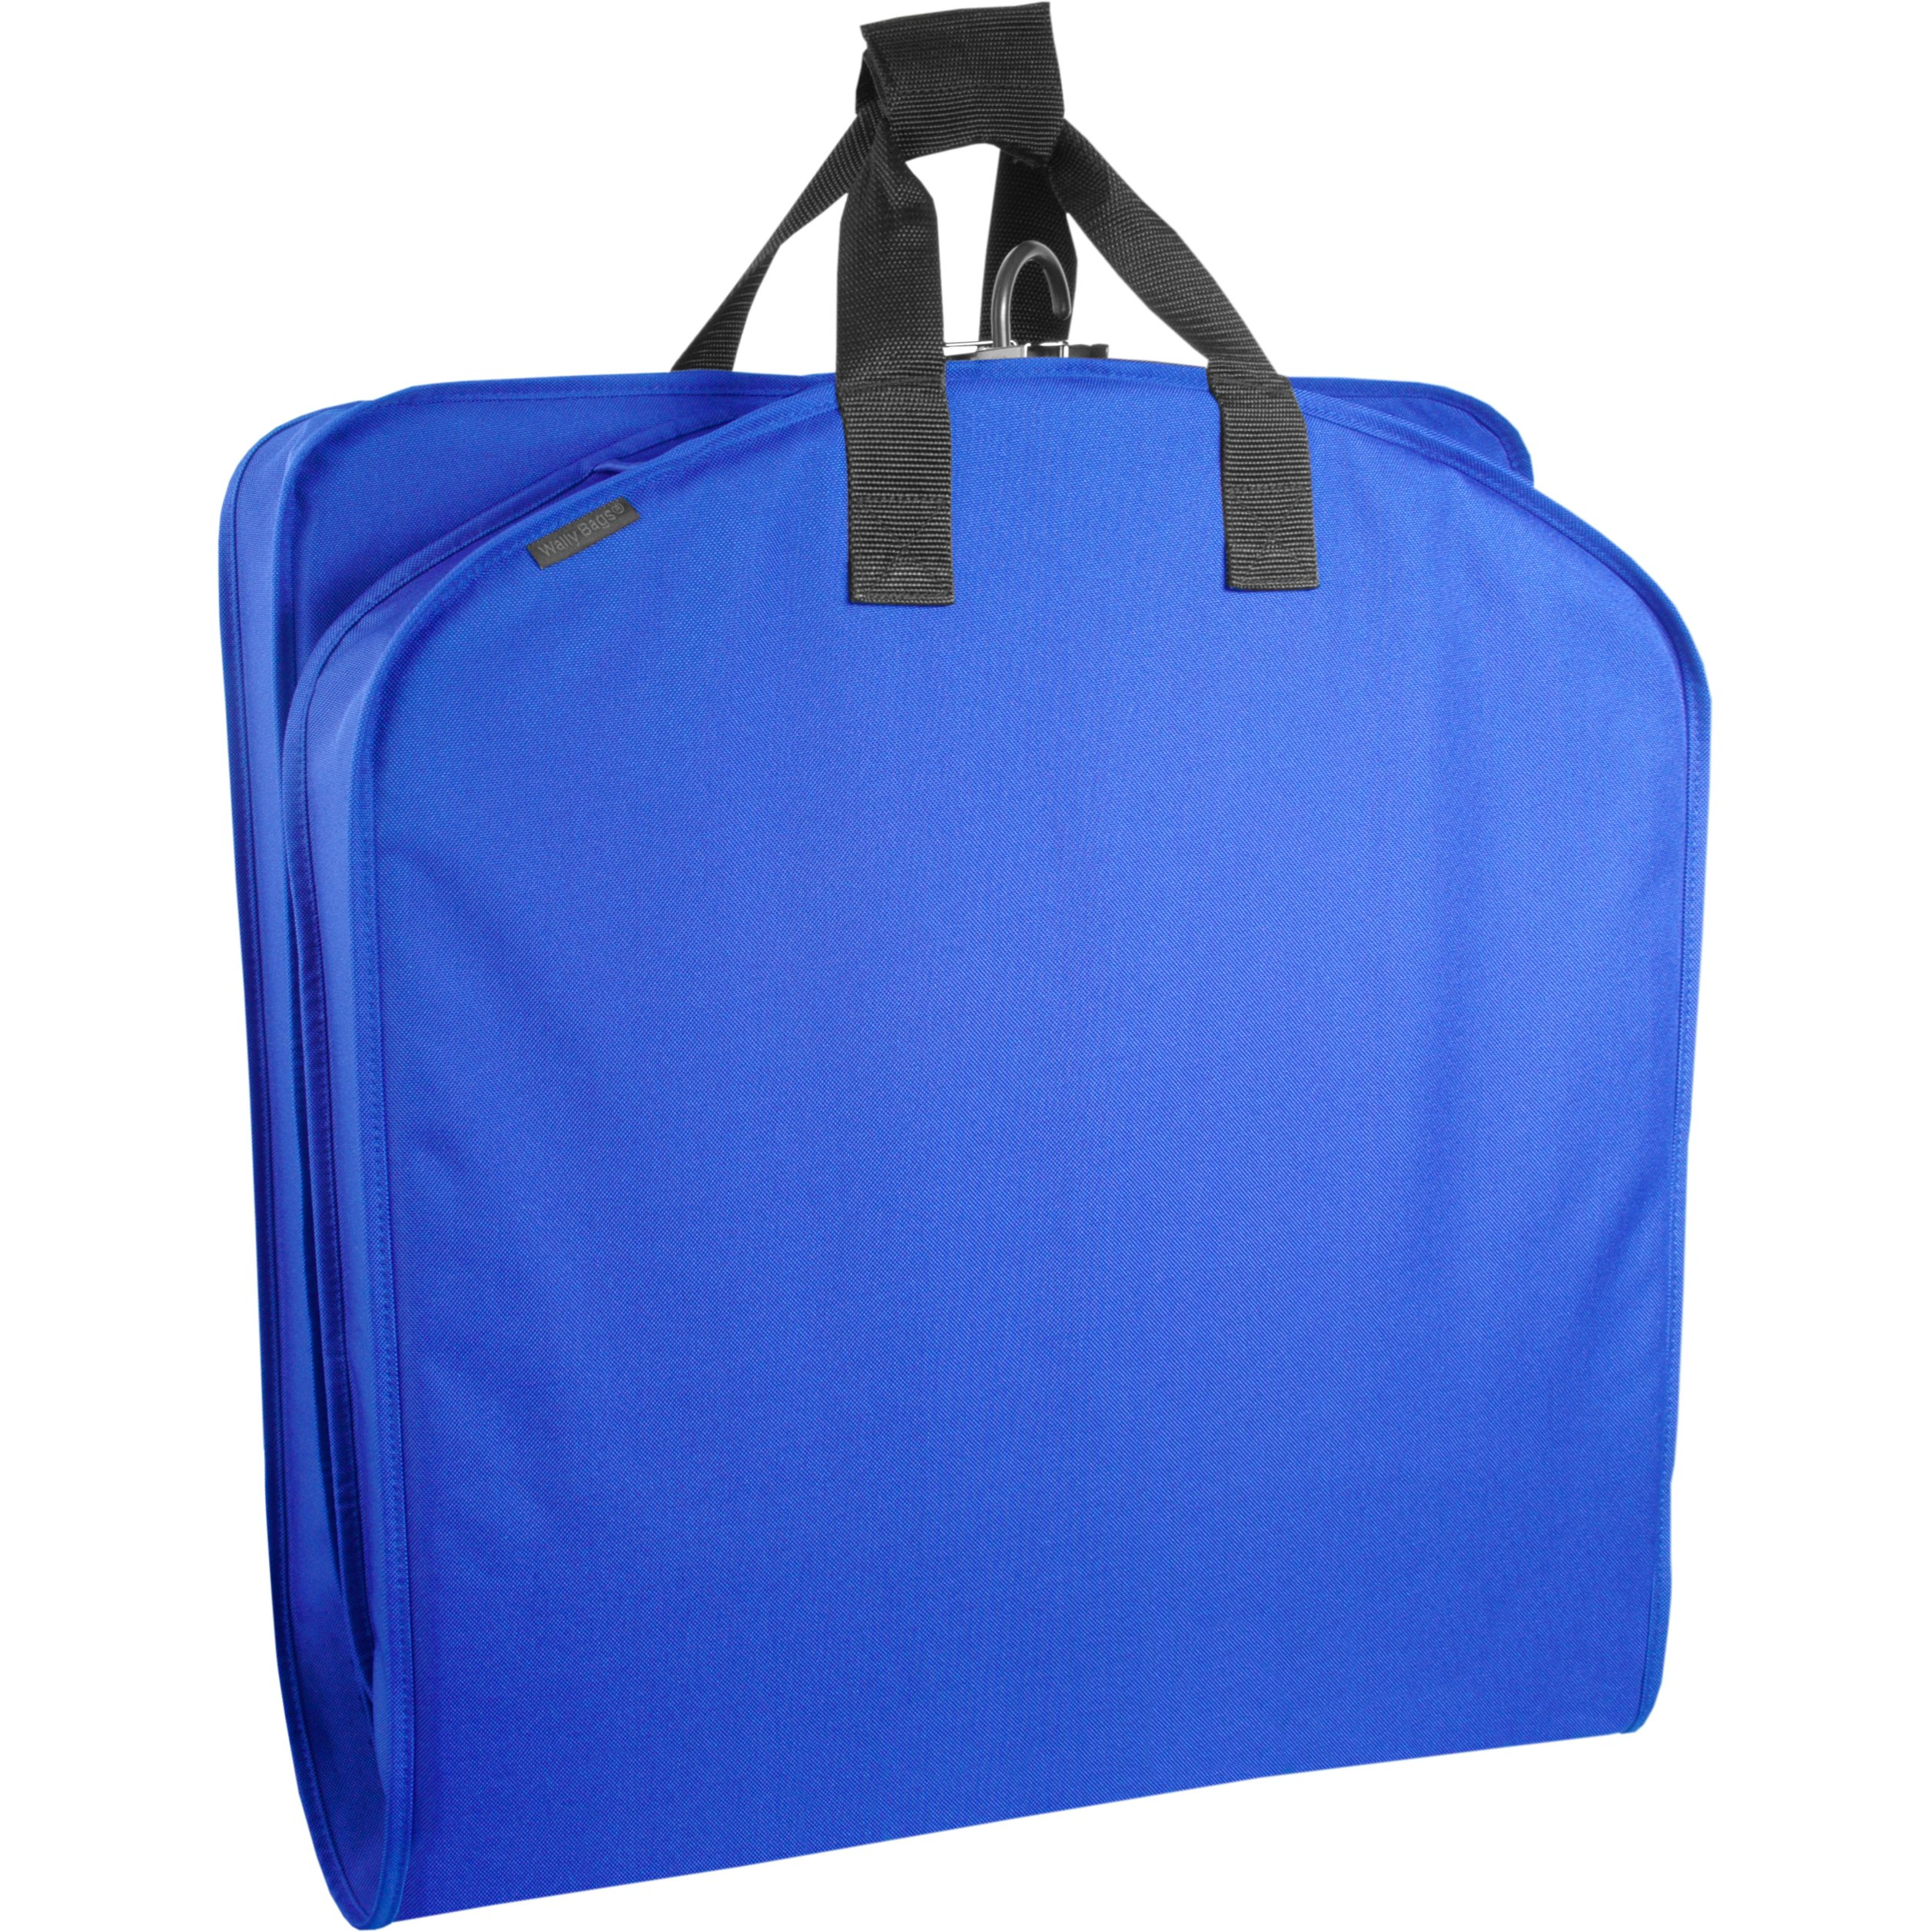 WallyBags Luggage 40'' Garment Bag, Royal Blue